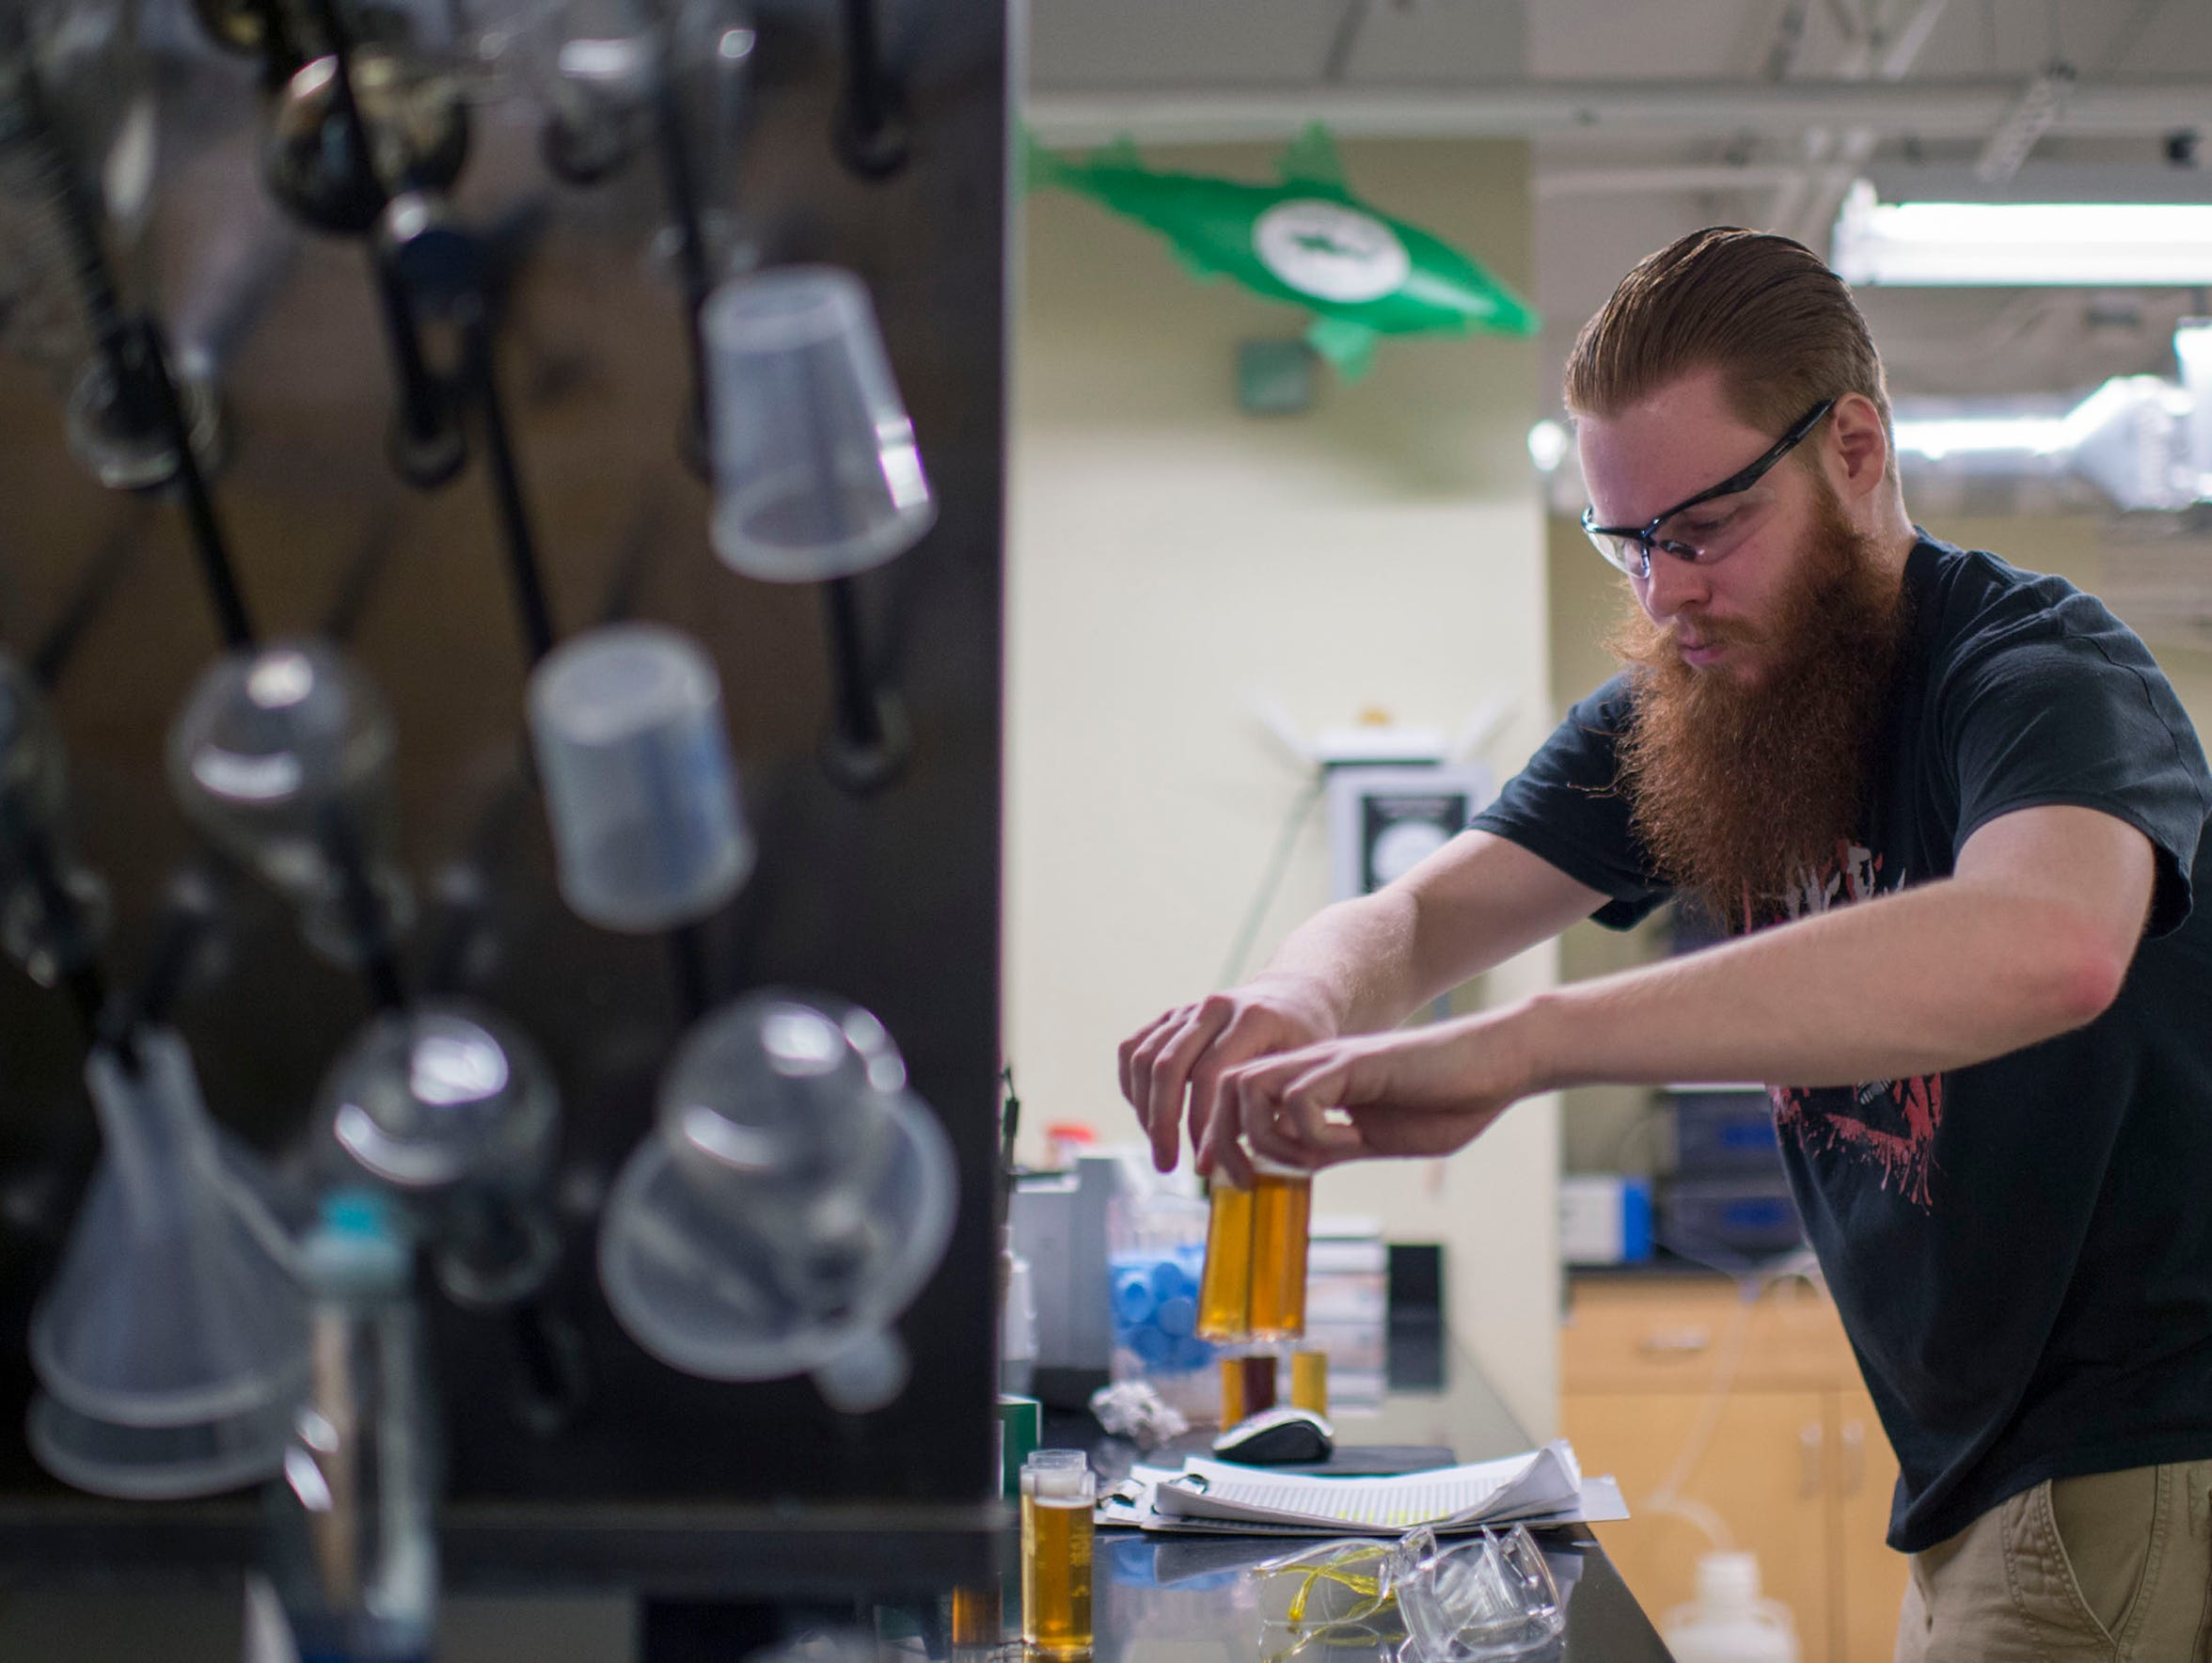 Process chemist Sean Miller checks the gravity of alcohol